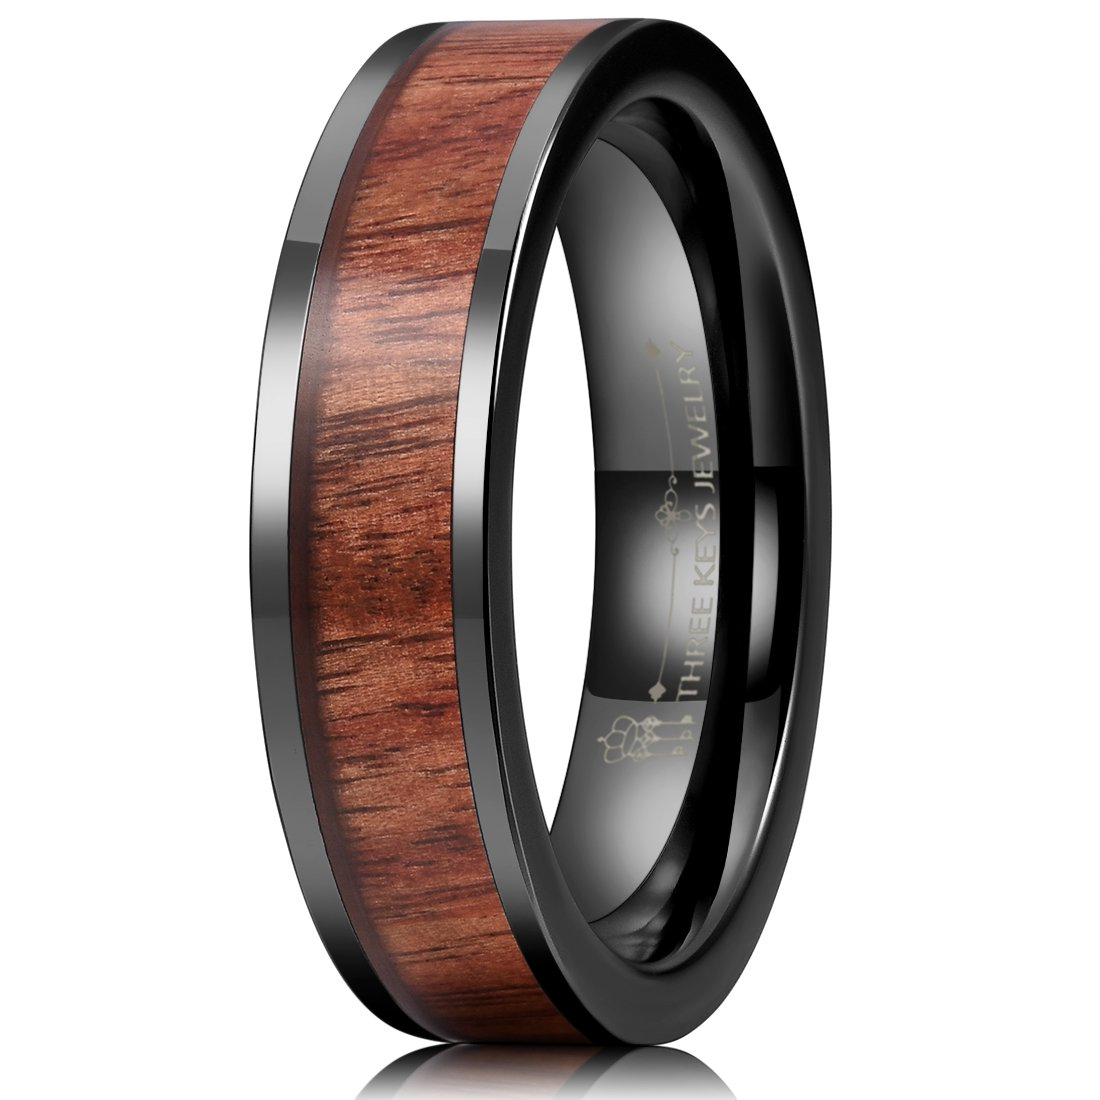 Three Keys Jewelry 6mm Black Ceramic Wedding Ring with Real Koa Wood Inlay Flat Top Wedding Band Engagement Ring Comfort Fit Size 11